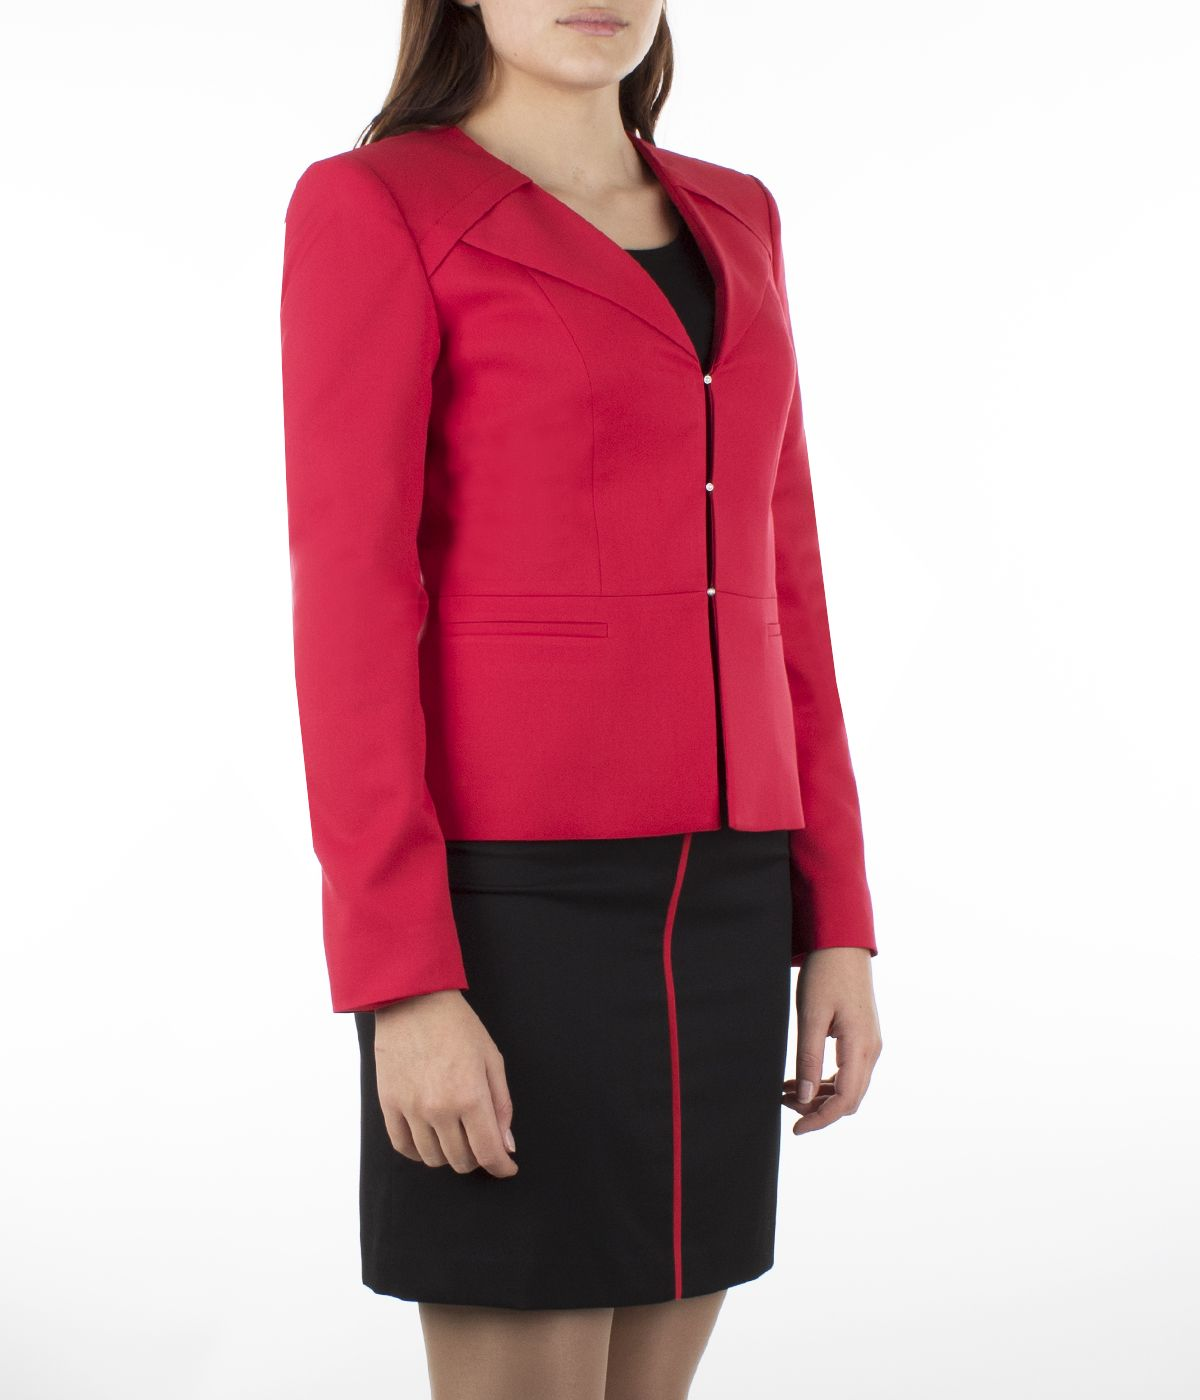 Fitted jacket without lapels with three pearl-type buttons fastening 2